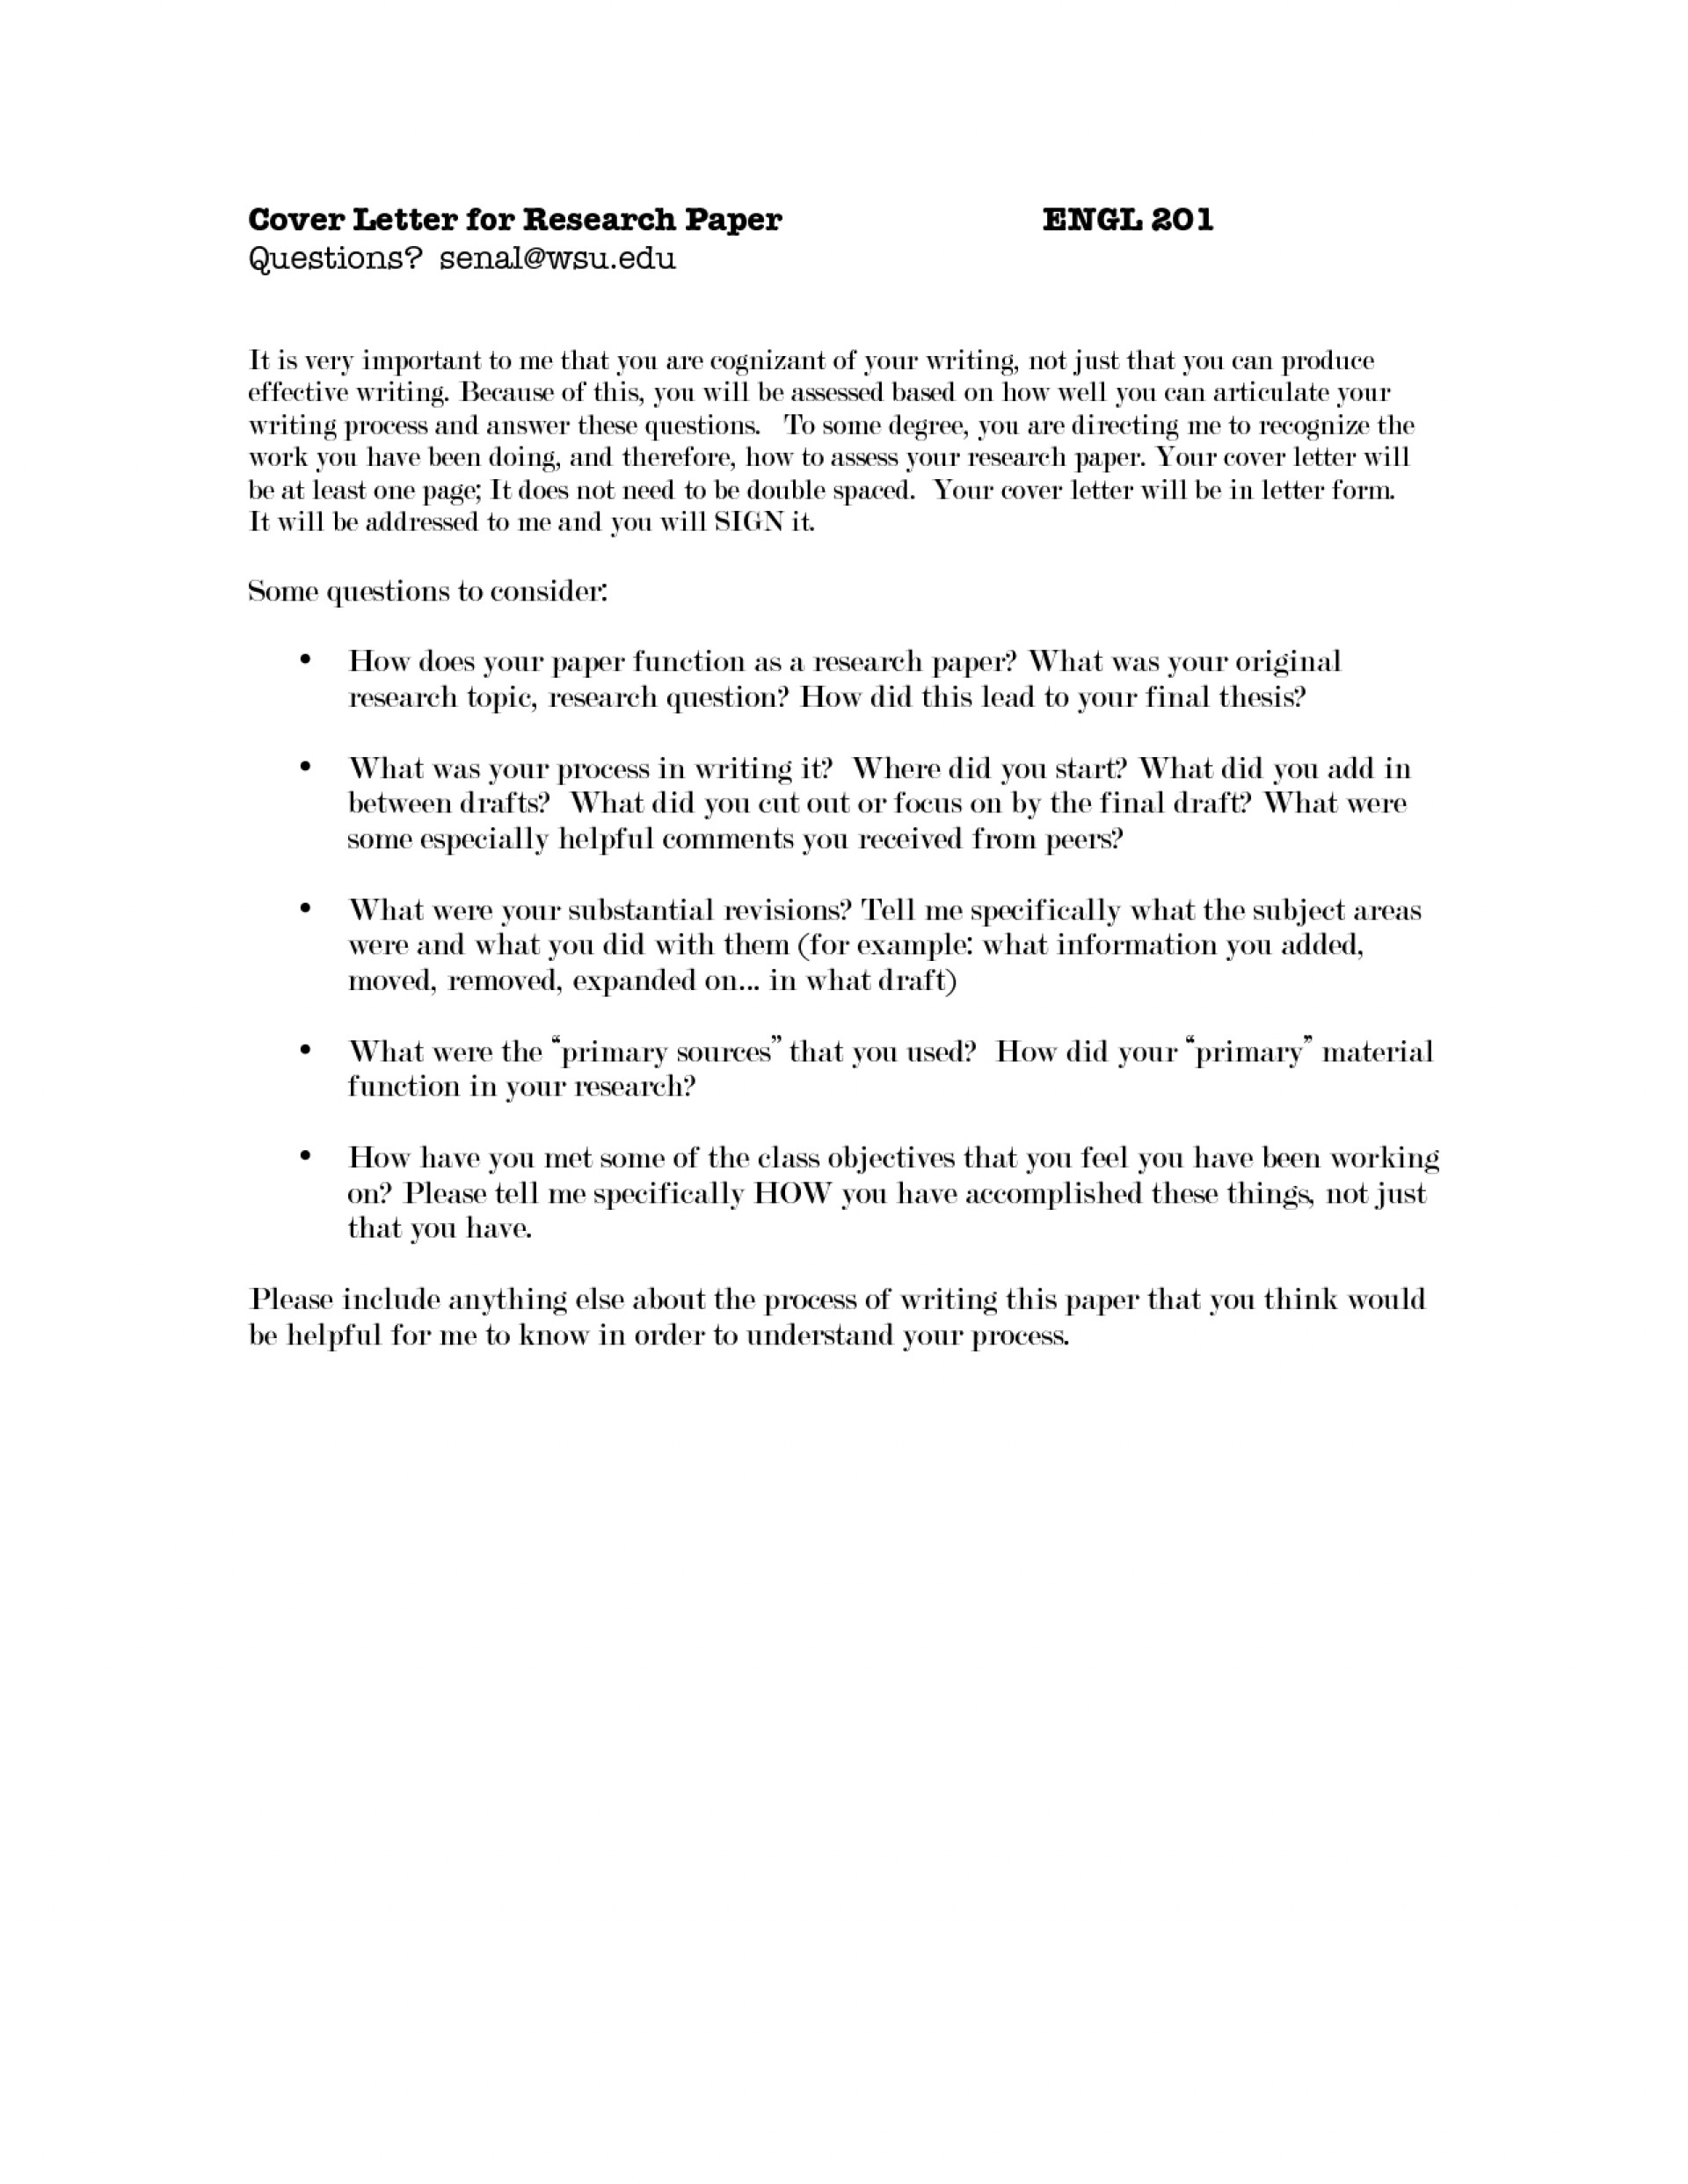 008 Research Paper Covers Resume Toreto Co Good Topics For Social